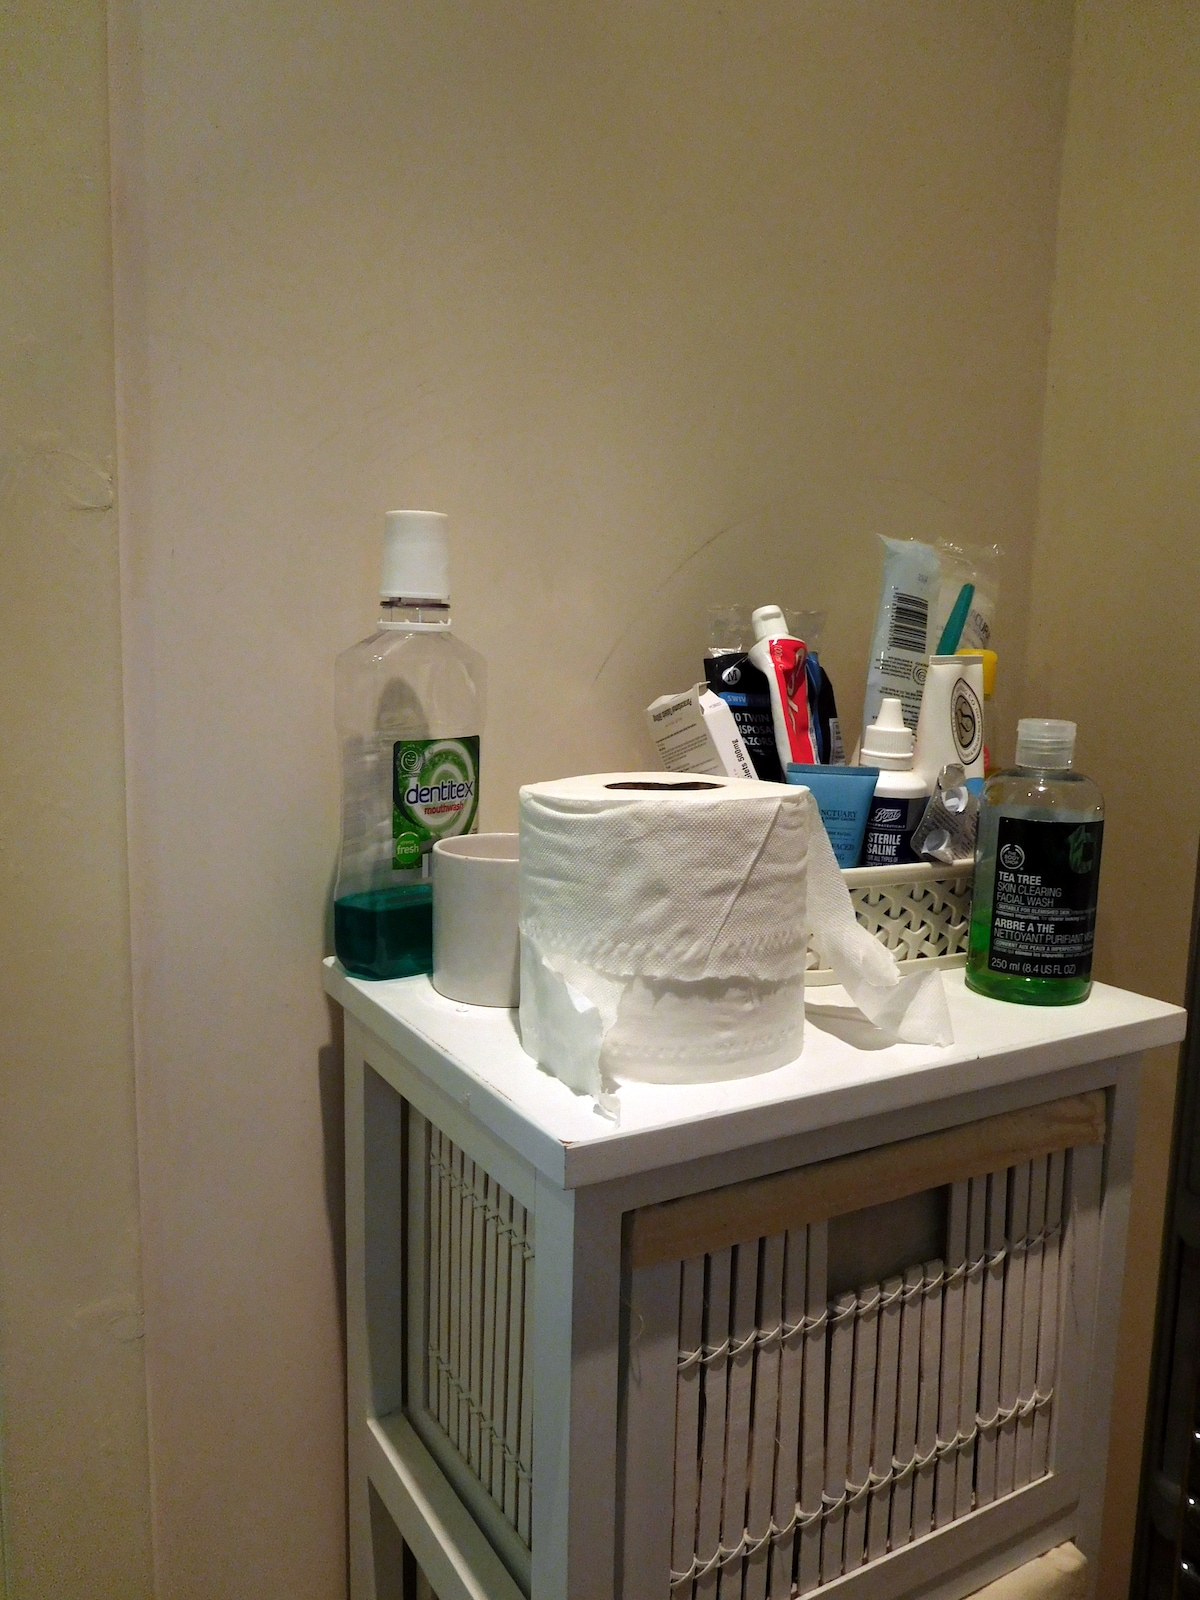 The bathroom's stocked with toiletries and essentials in case you've left something behind.